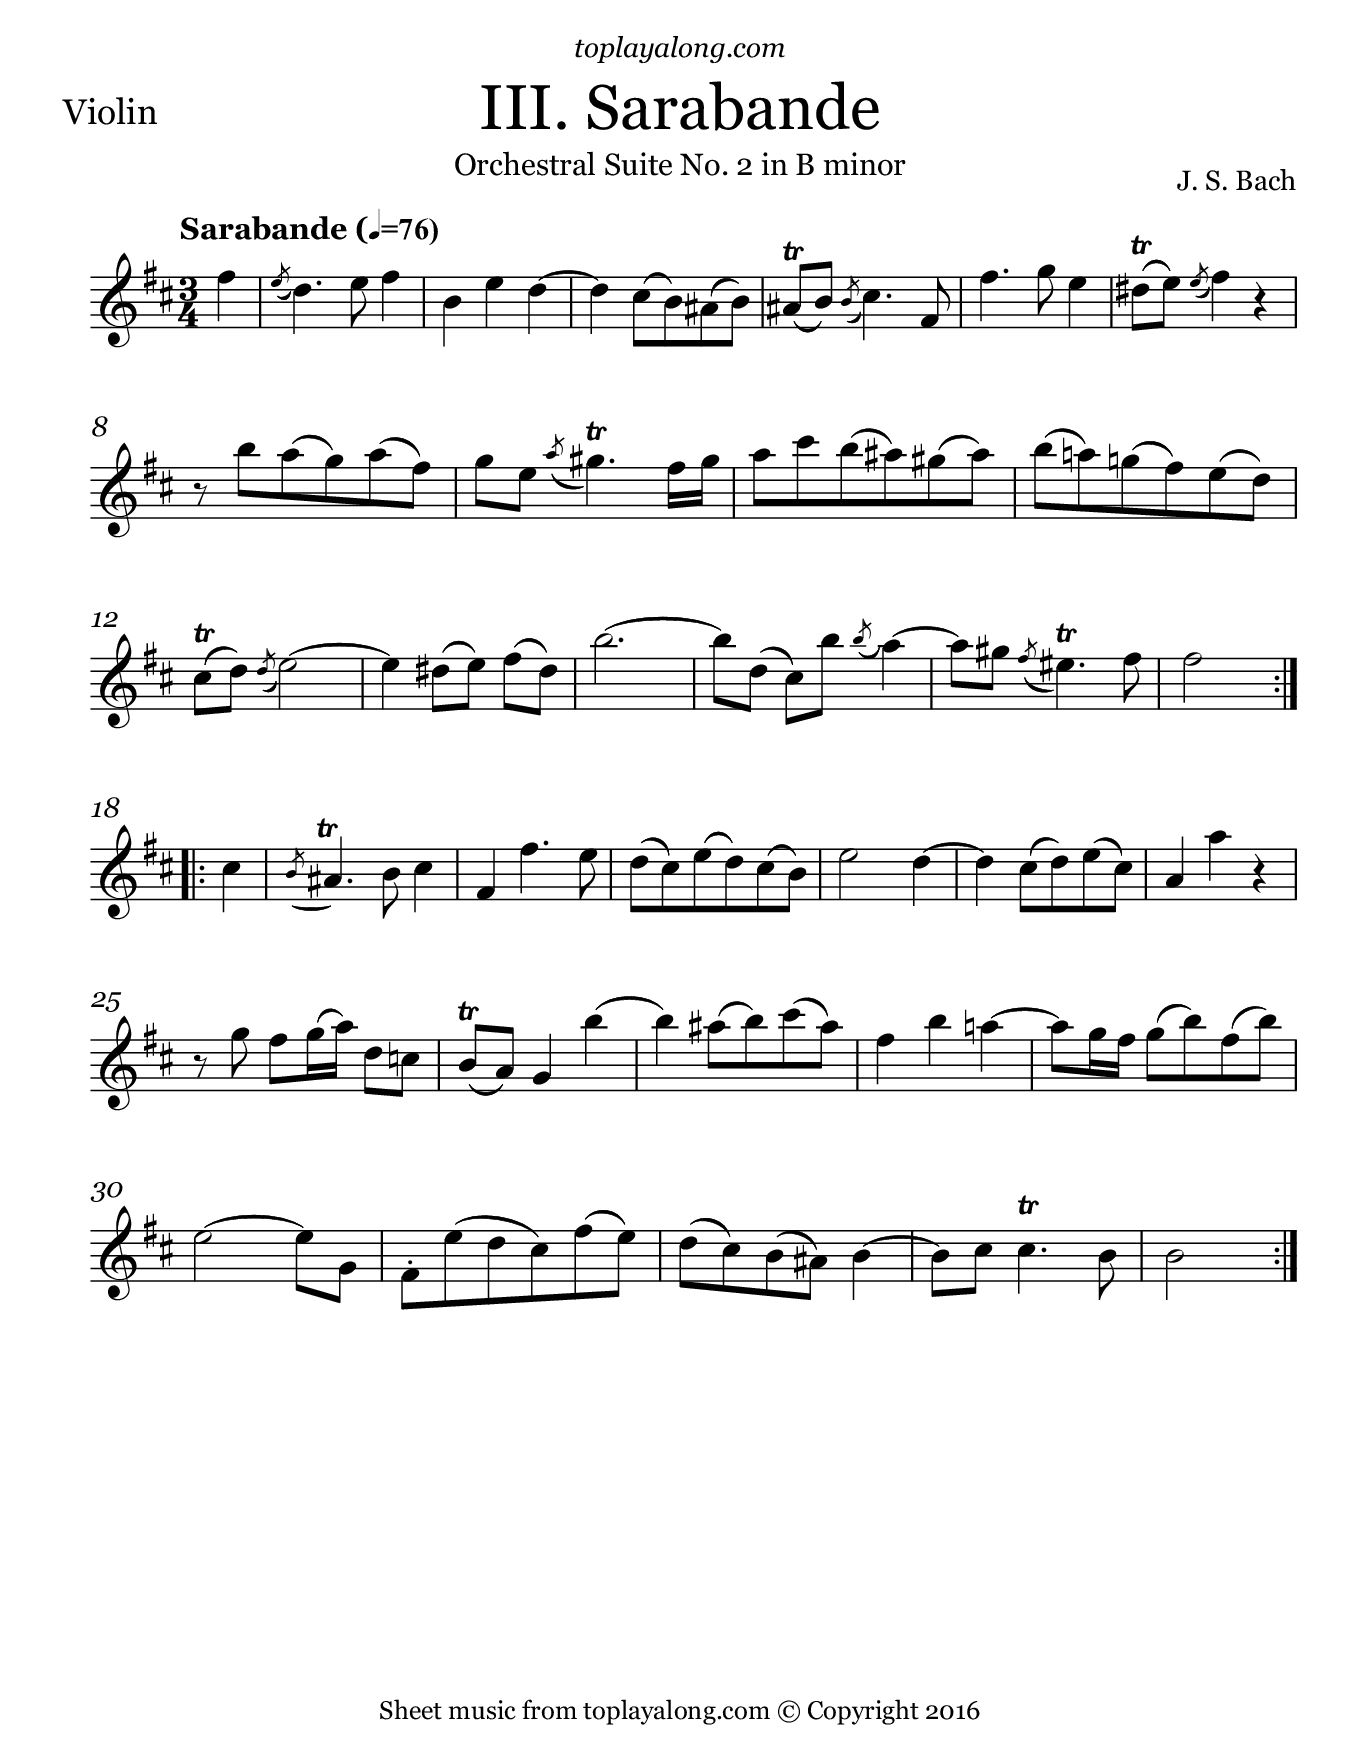 Orchestral Suite No. 2 (III. Sarabande) by J. S. Bach. Sheet music for Violin, page 1.